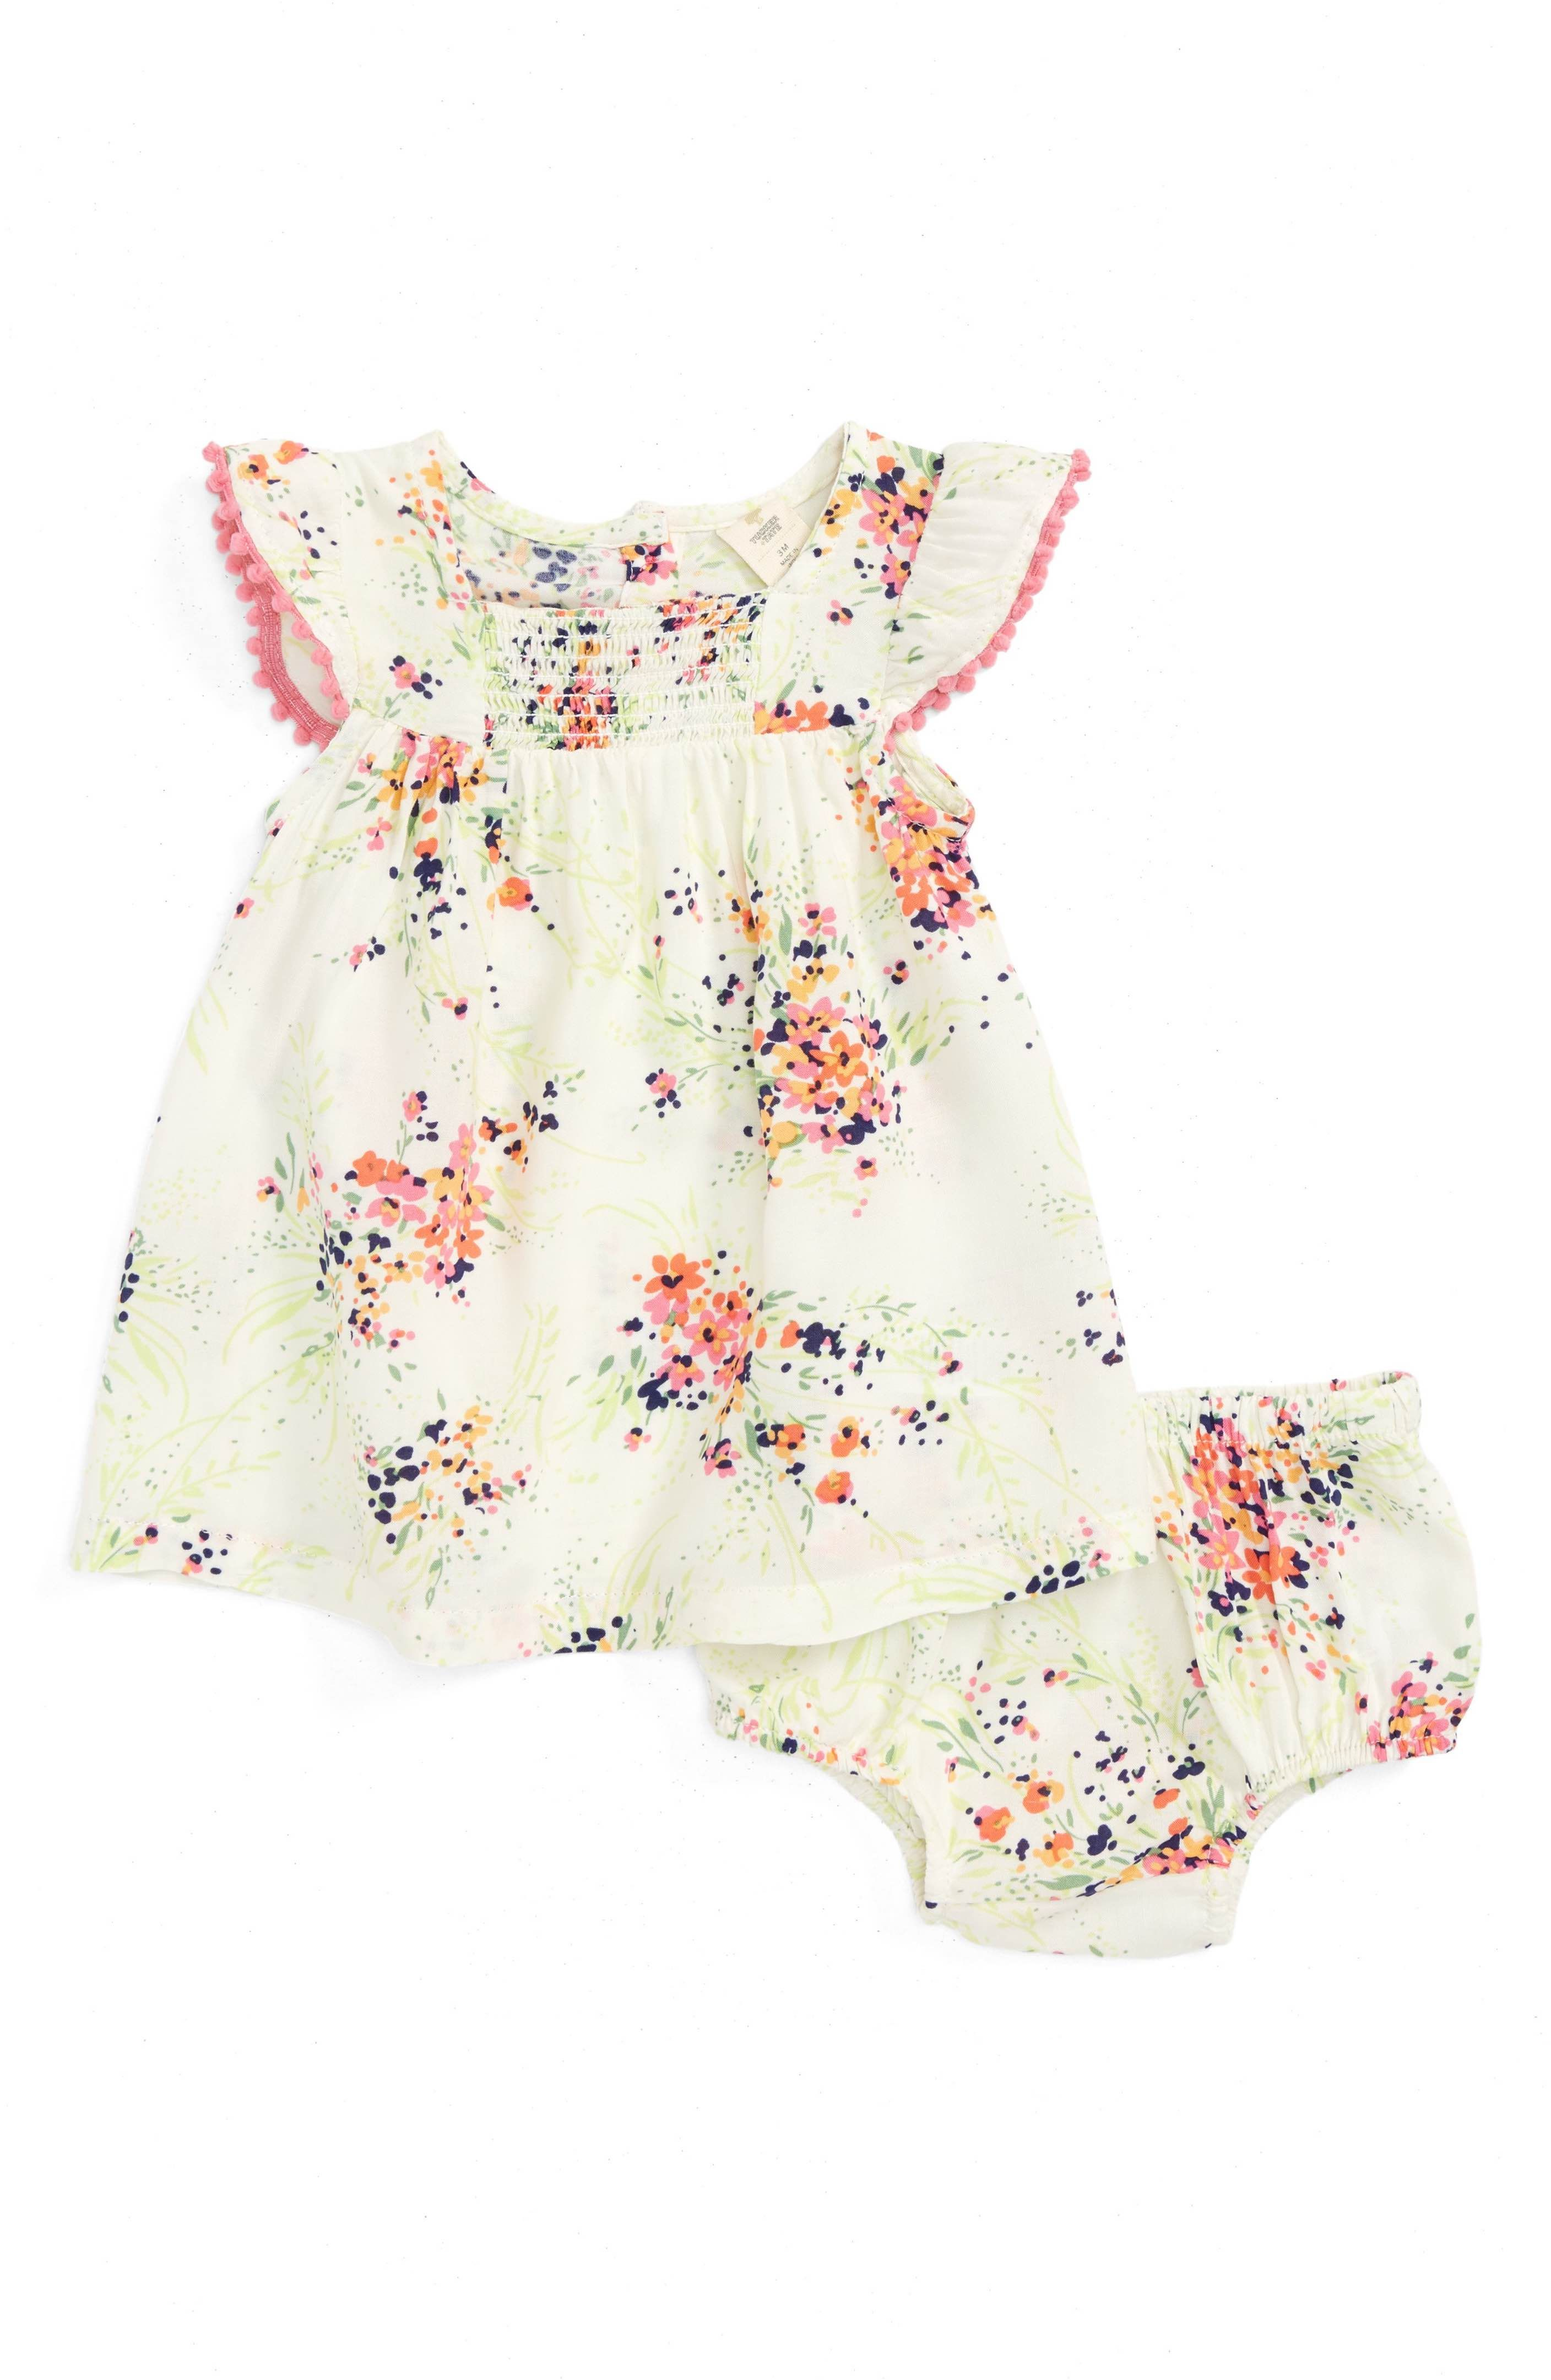 Pin by lesly on bambini pinterest babies girls and babies clothes